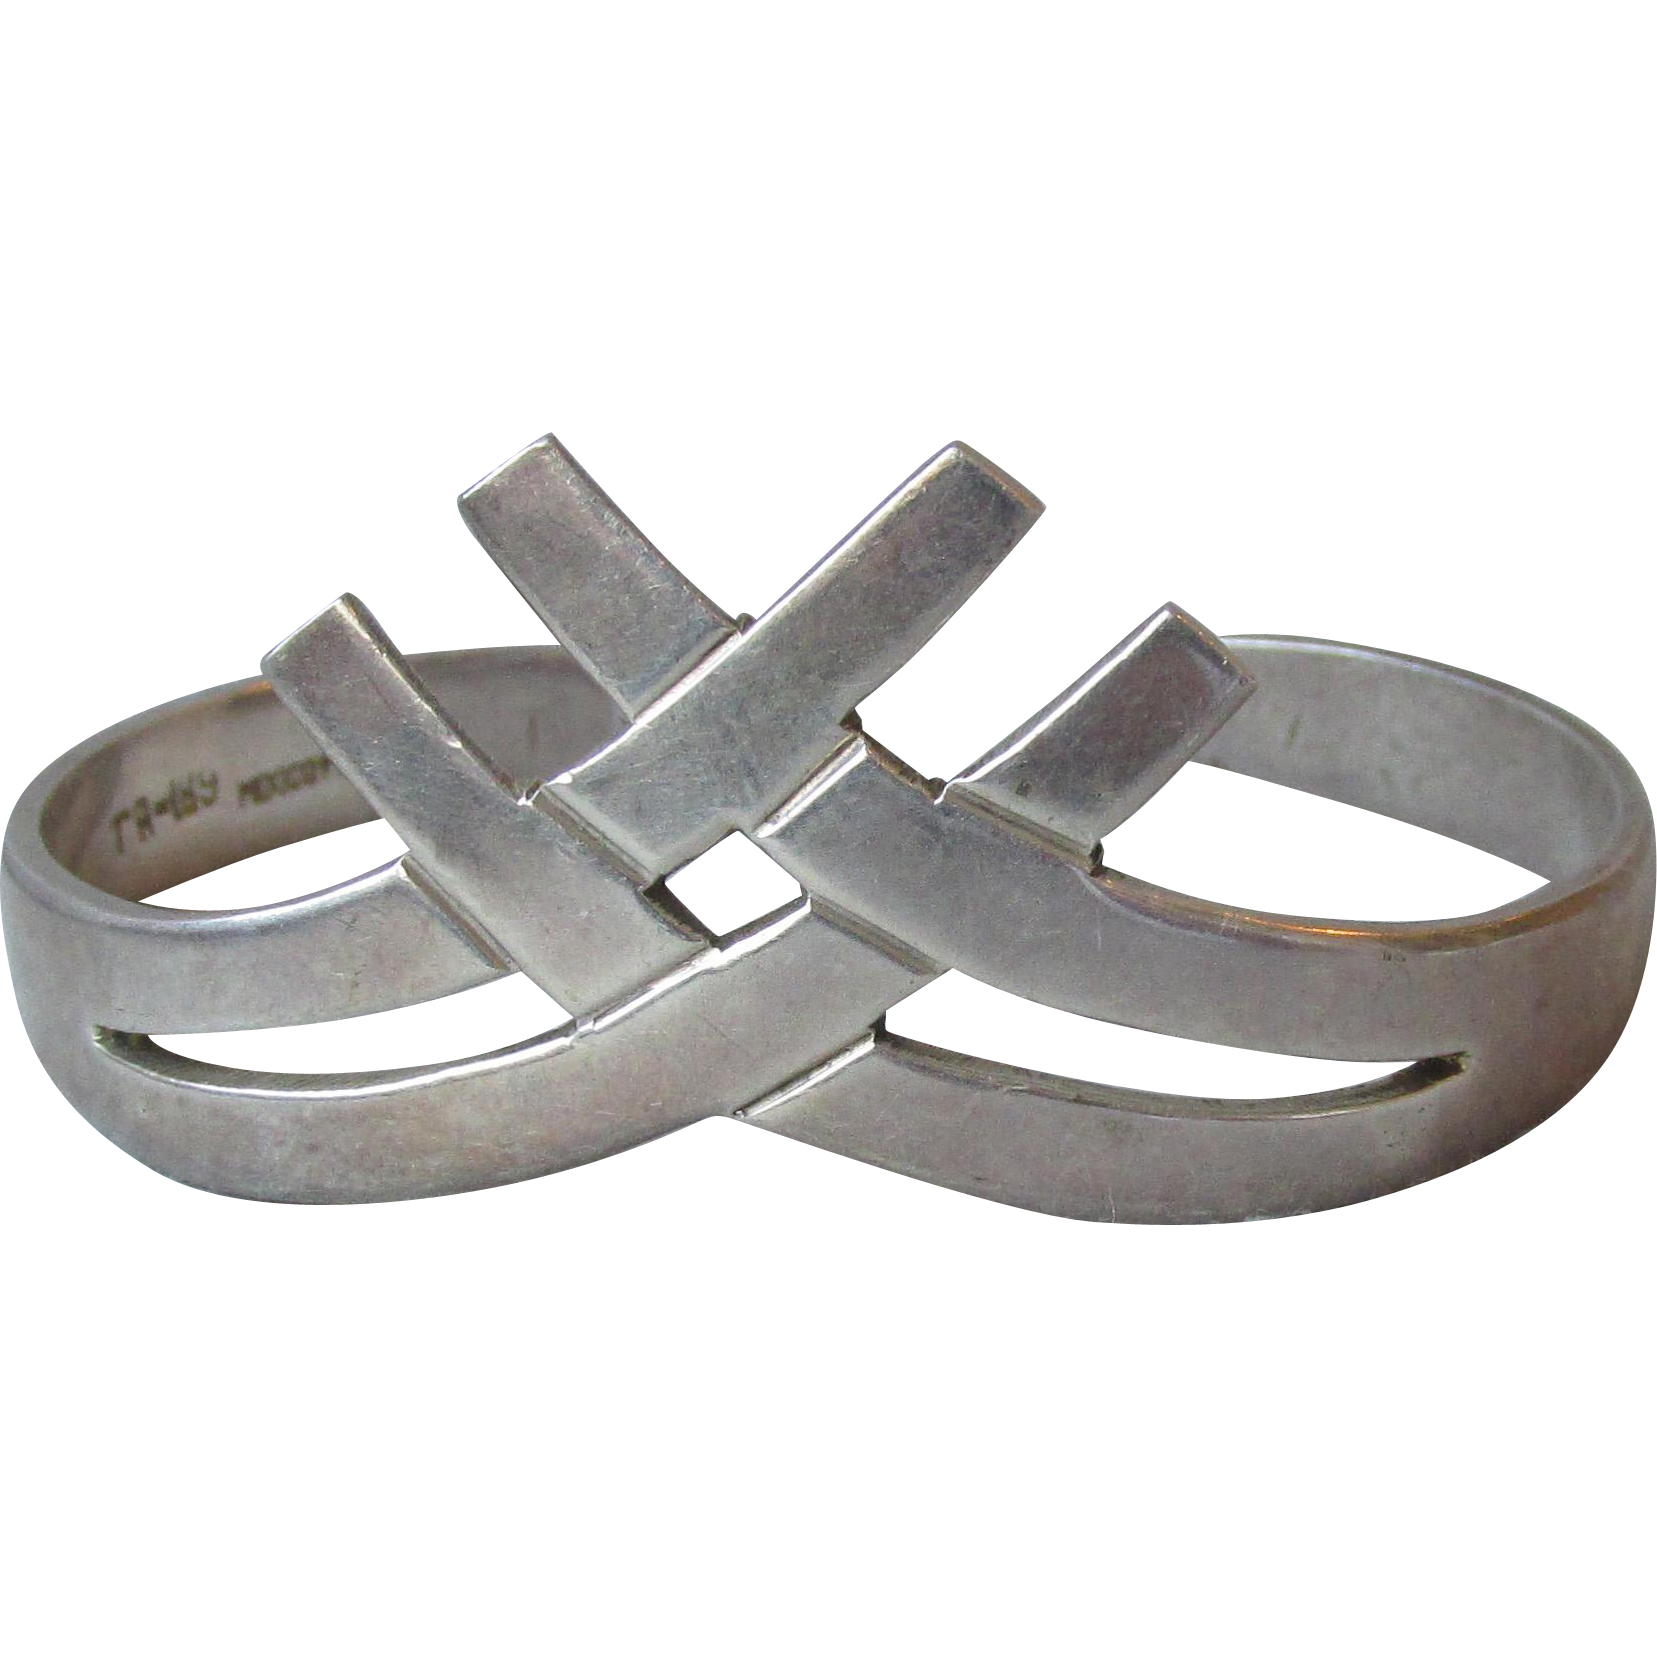 Vintage Taxco Mexico Sterling Silver Basket Weave Cuff Bracelet, Modernist Bangle Criss-Cross Design